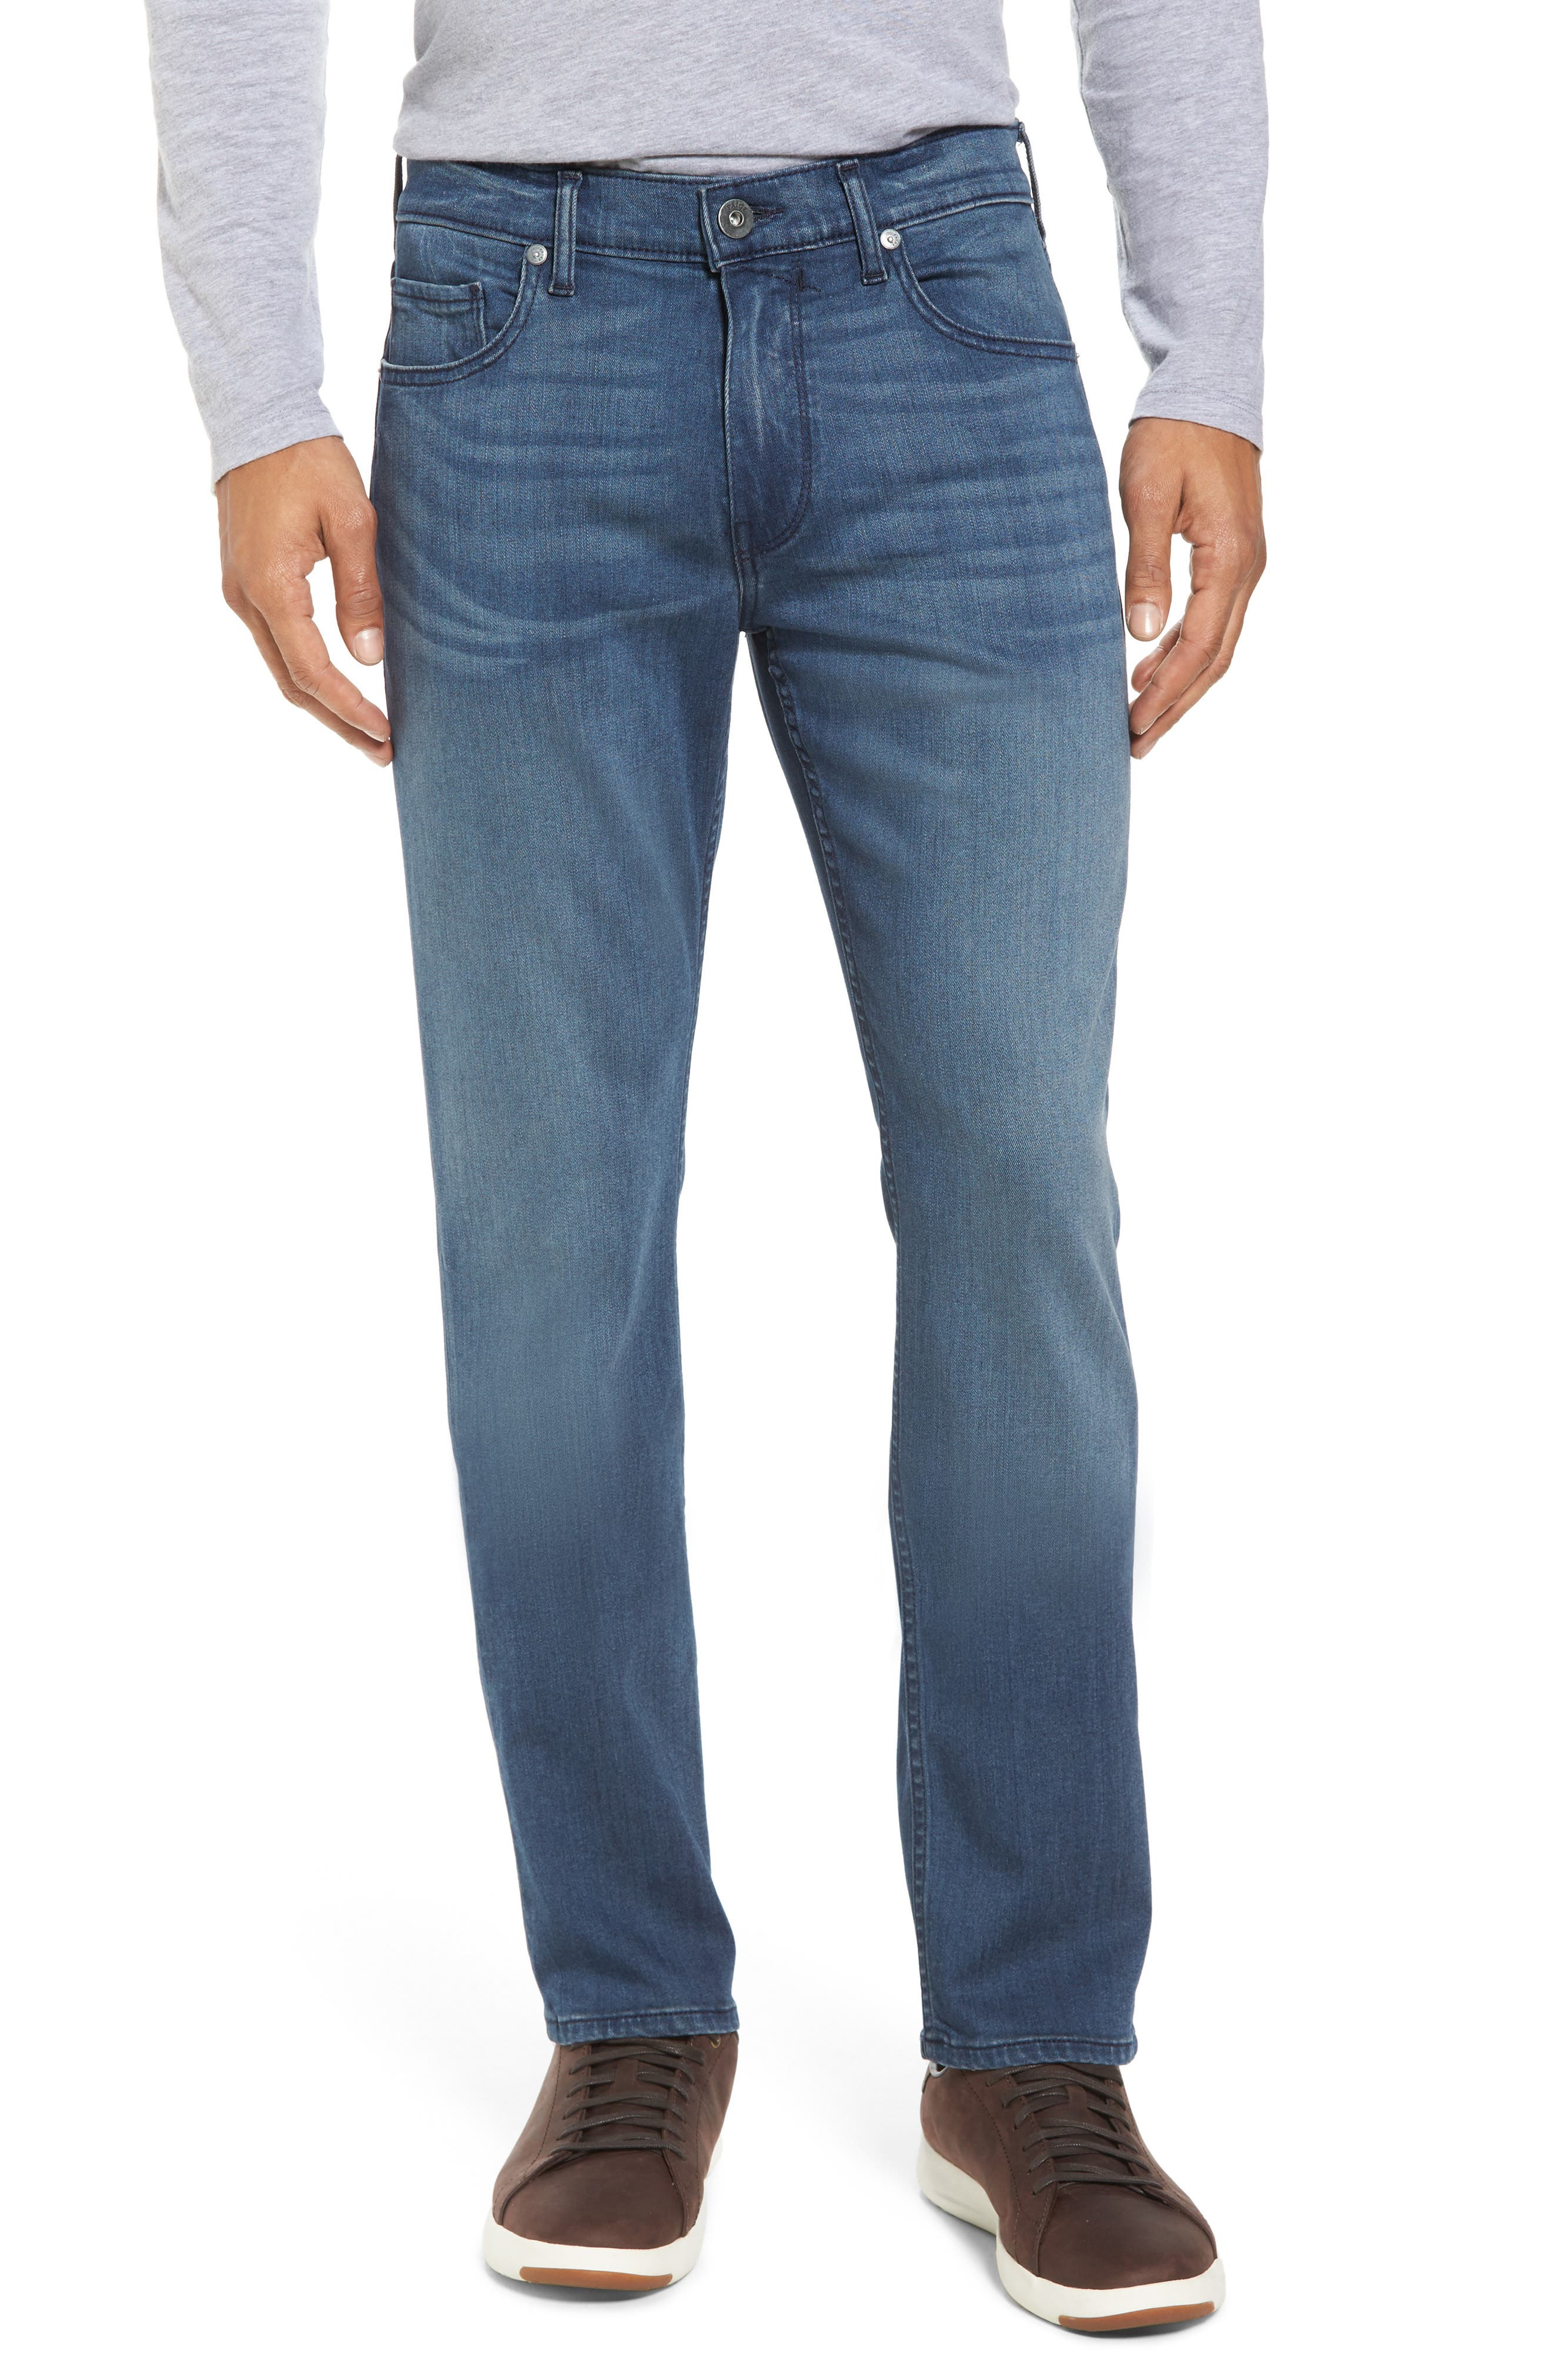 Transcend - Federal Slim Straight Fit Jeans,                             Main thumbnail 1, color,                             Skyler